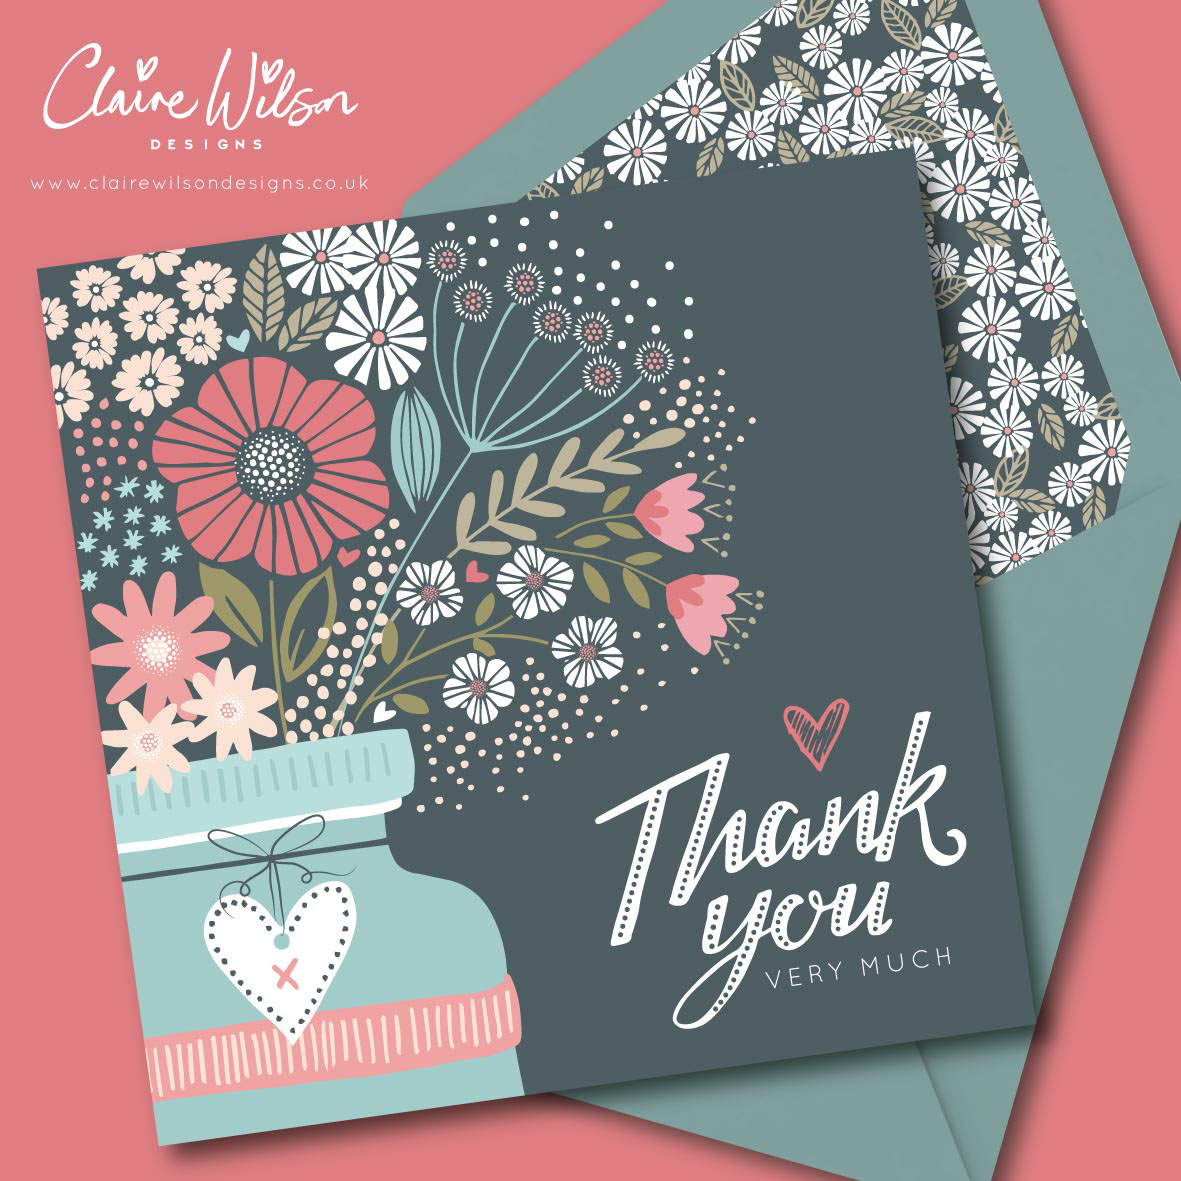 CWD_Thank You Very Much card mock up - licensed design.jpg